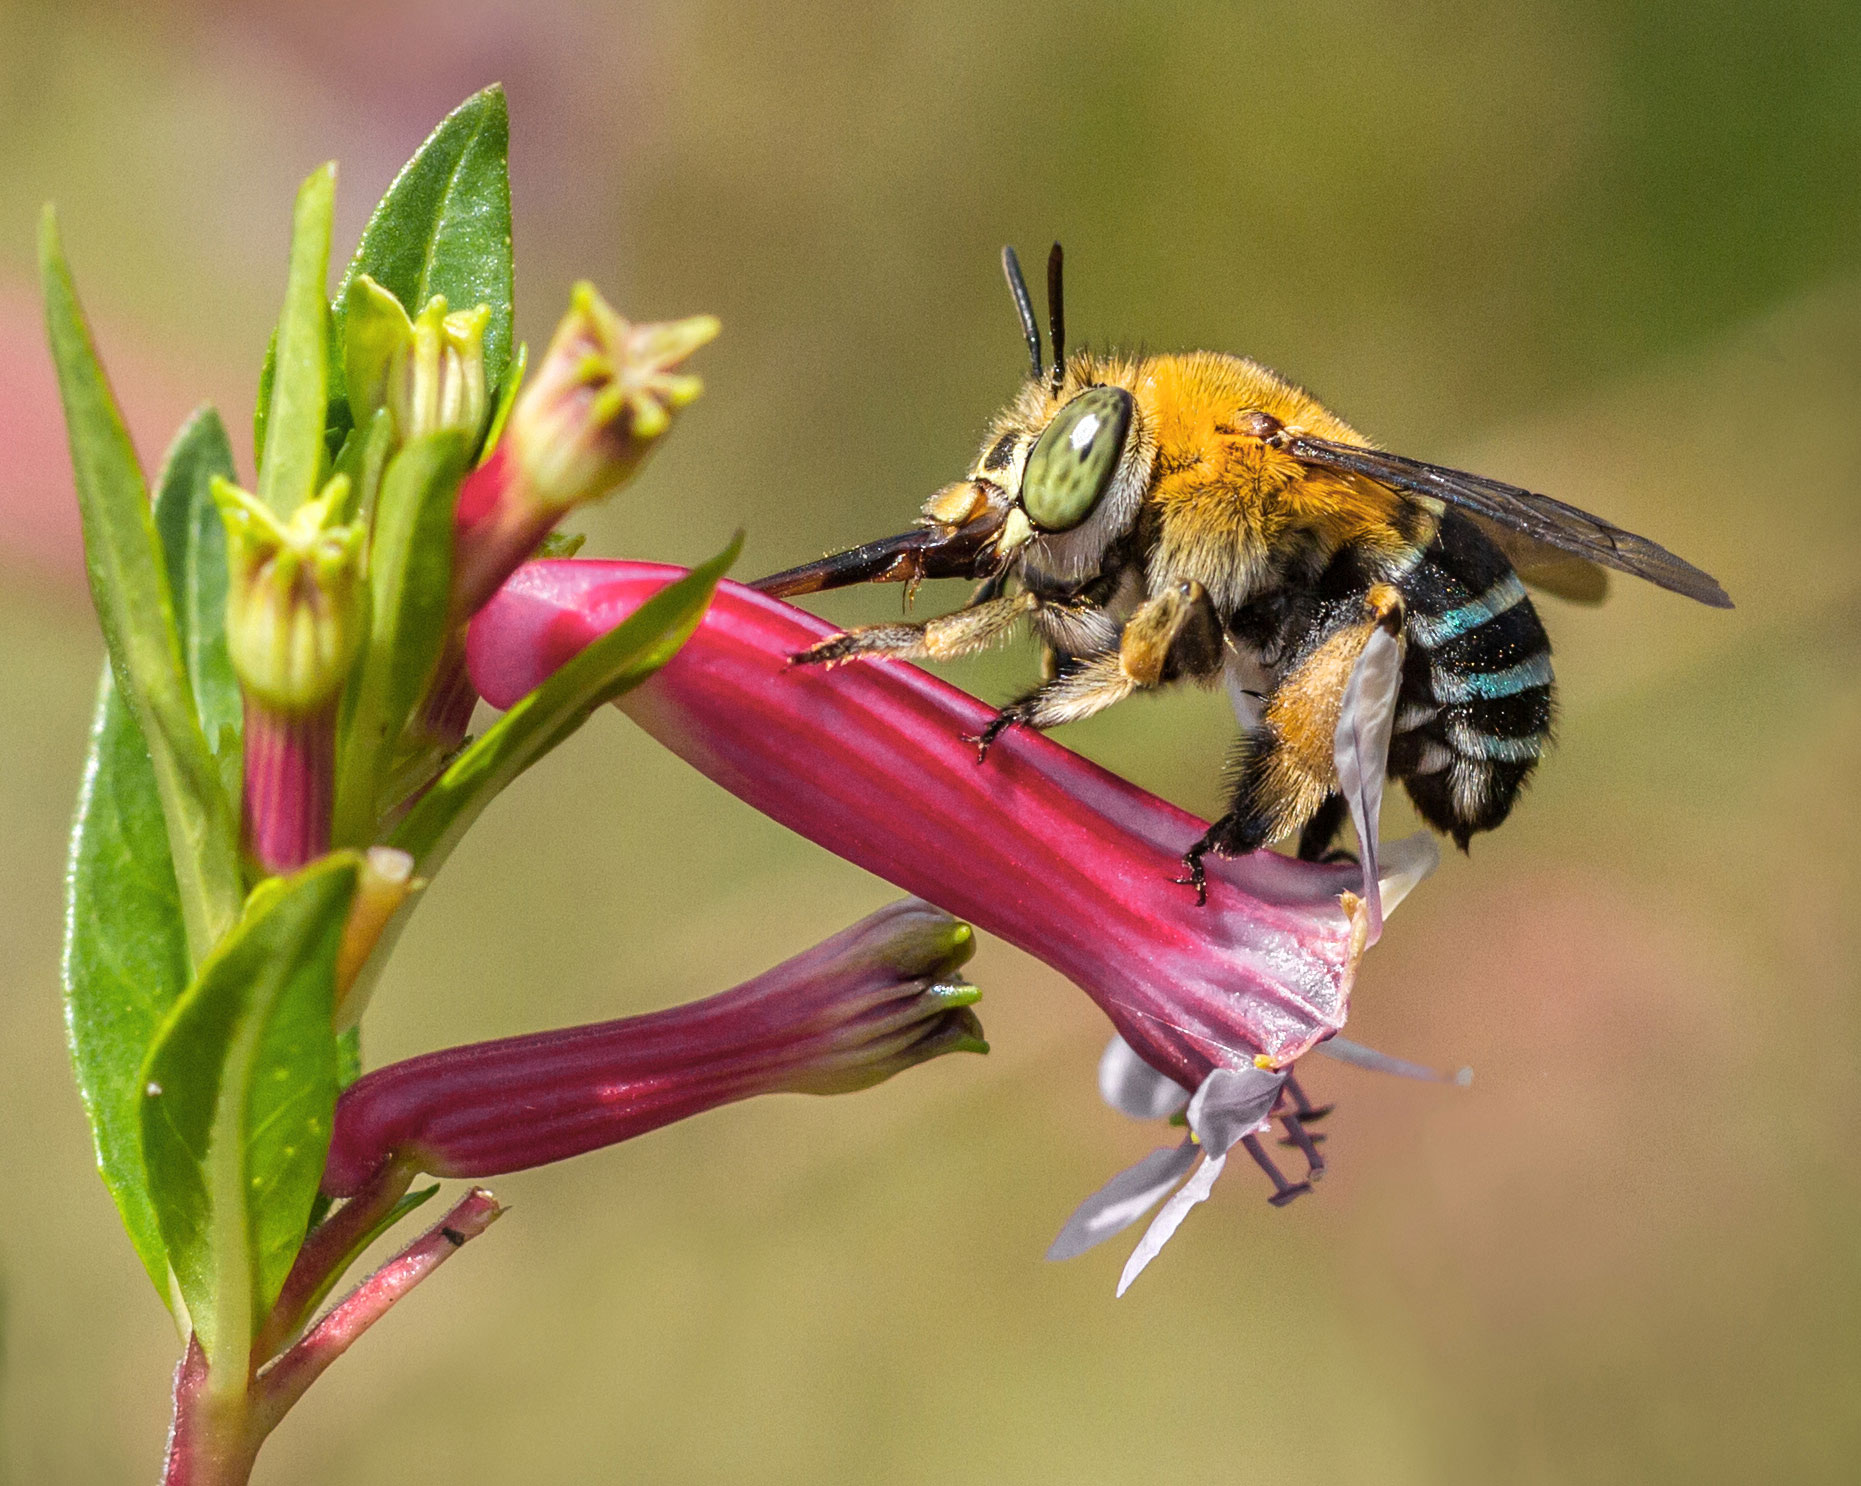 a female blue-banded bee robbing nectar by piercing the ower petals with her straw-like brown sheath that protects her tongue